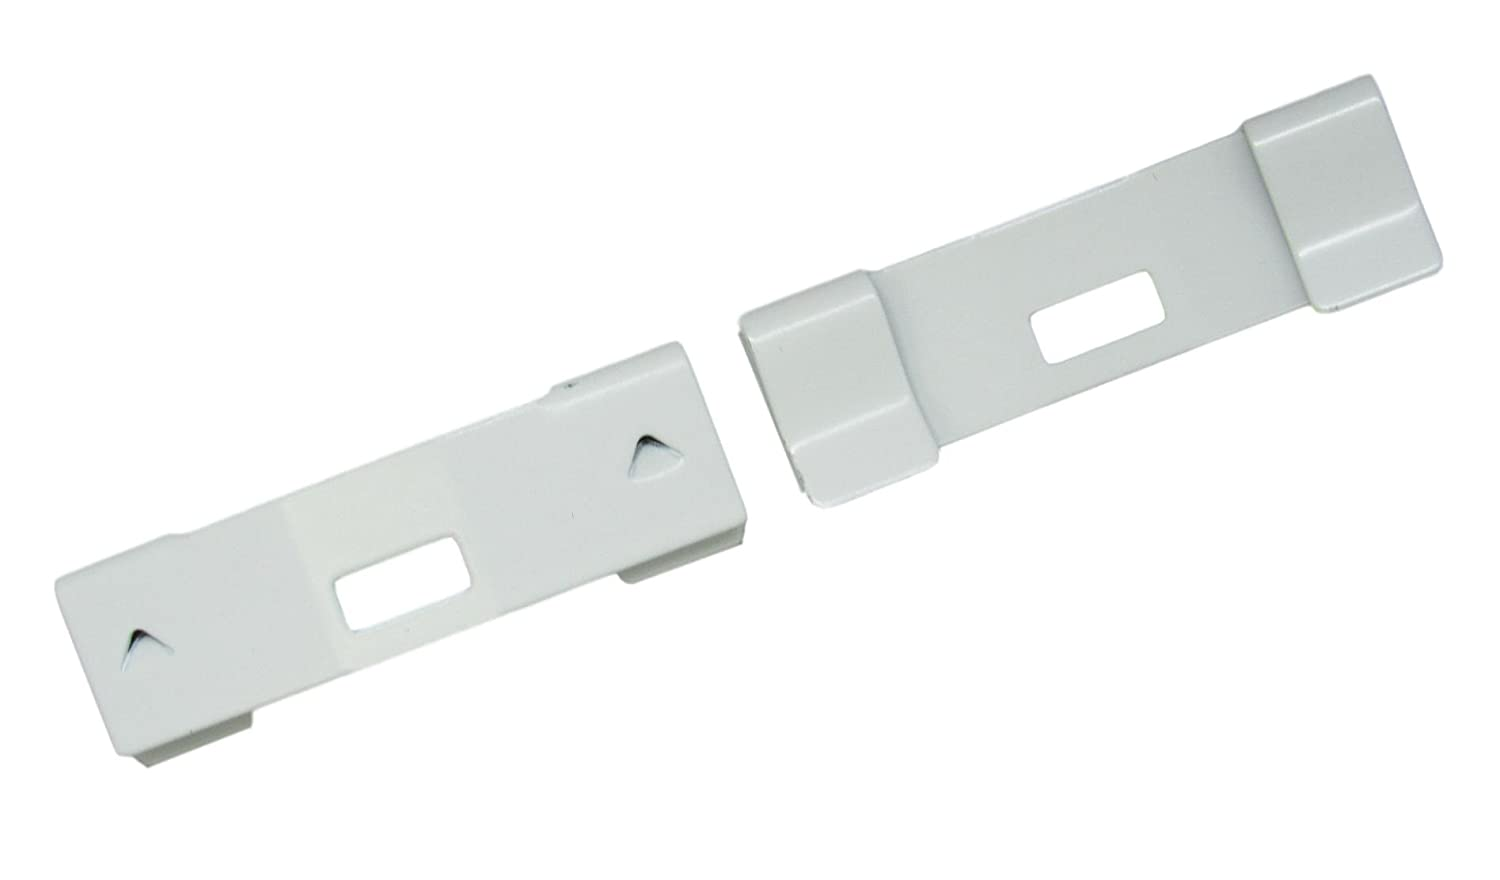 25 Pack VERTICAL BLIND Vane Saver ~ White Curved Repair Clips ~ Fixes Broken Holes Amazing Drapery Hardware 25 White Vane Savers